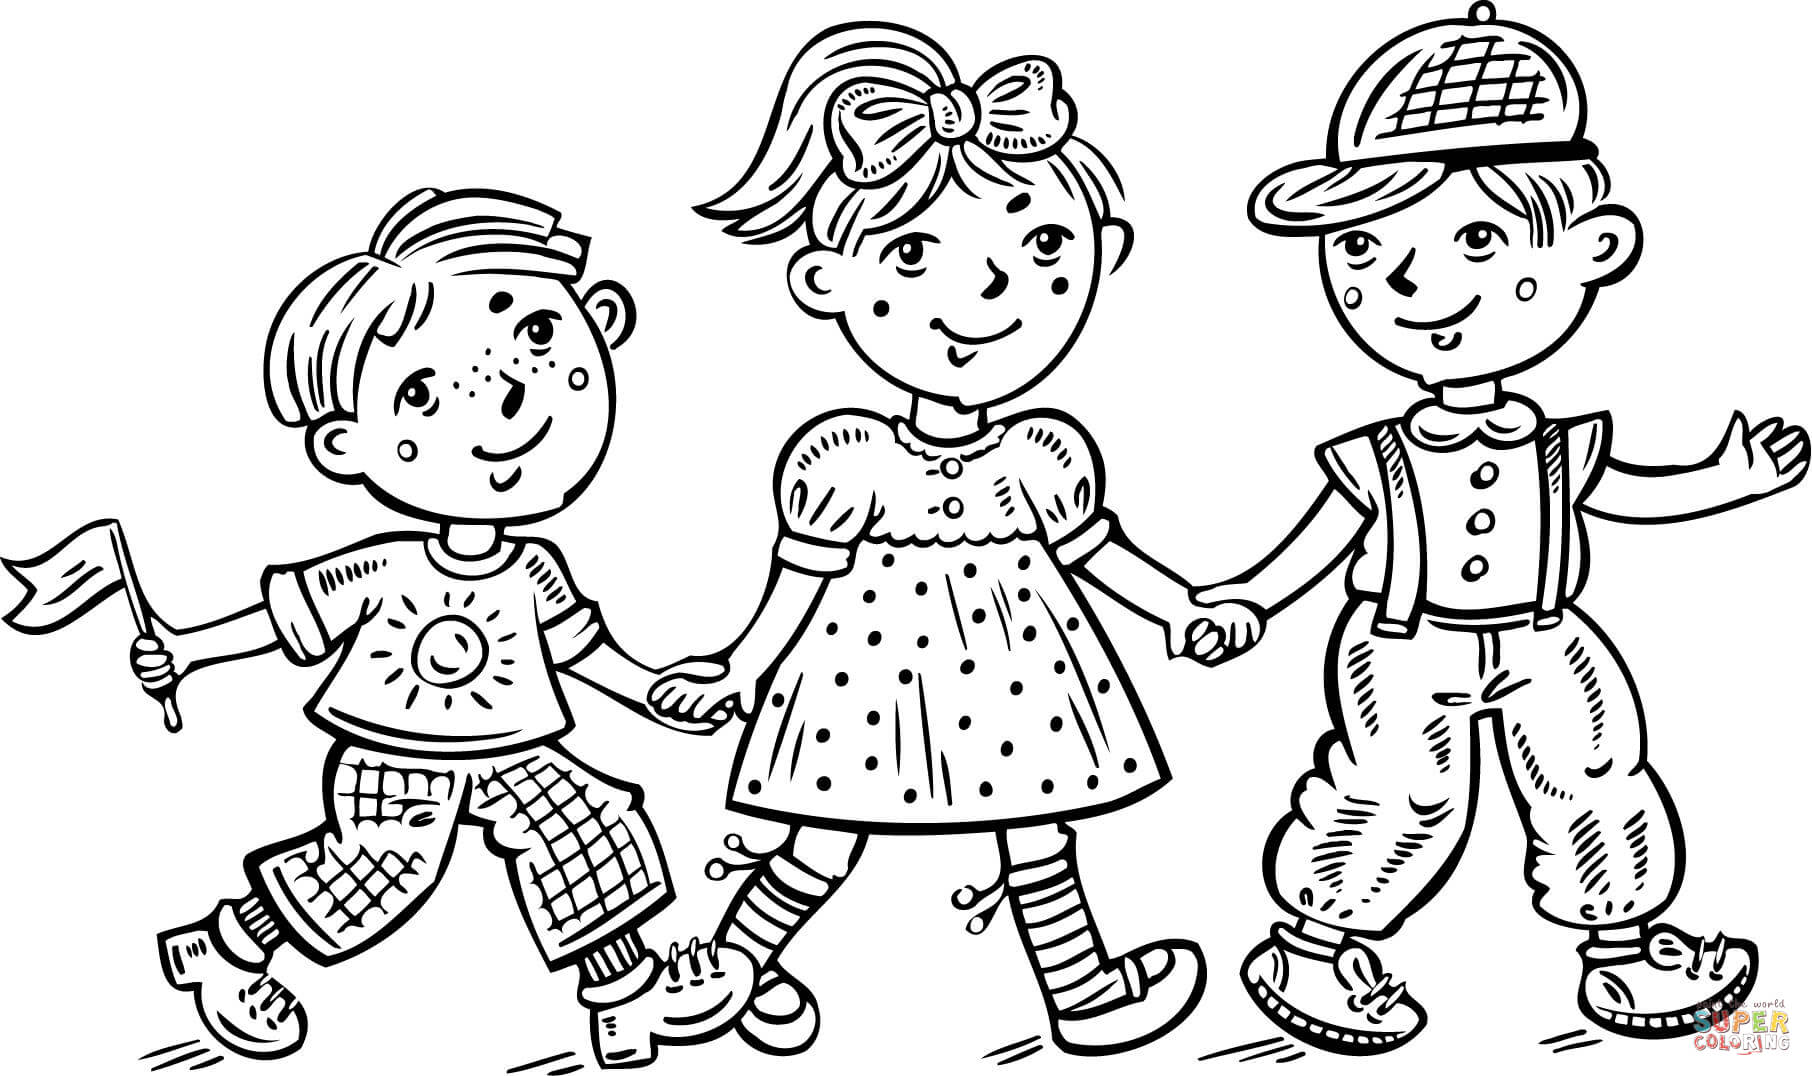 coloring sheet boy and girl boy outline drawing at getdrawings free download girl and boy sheet coloring